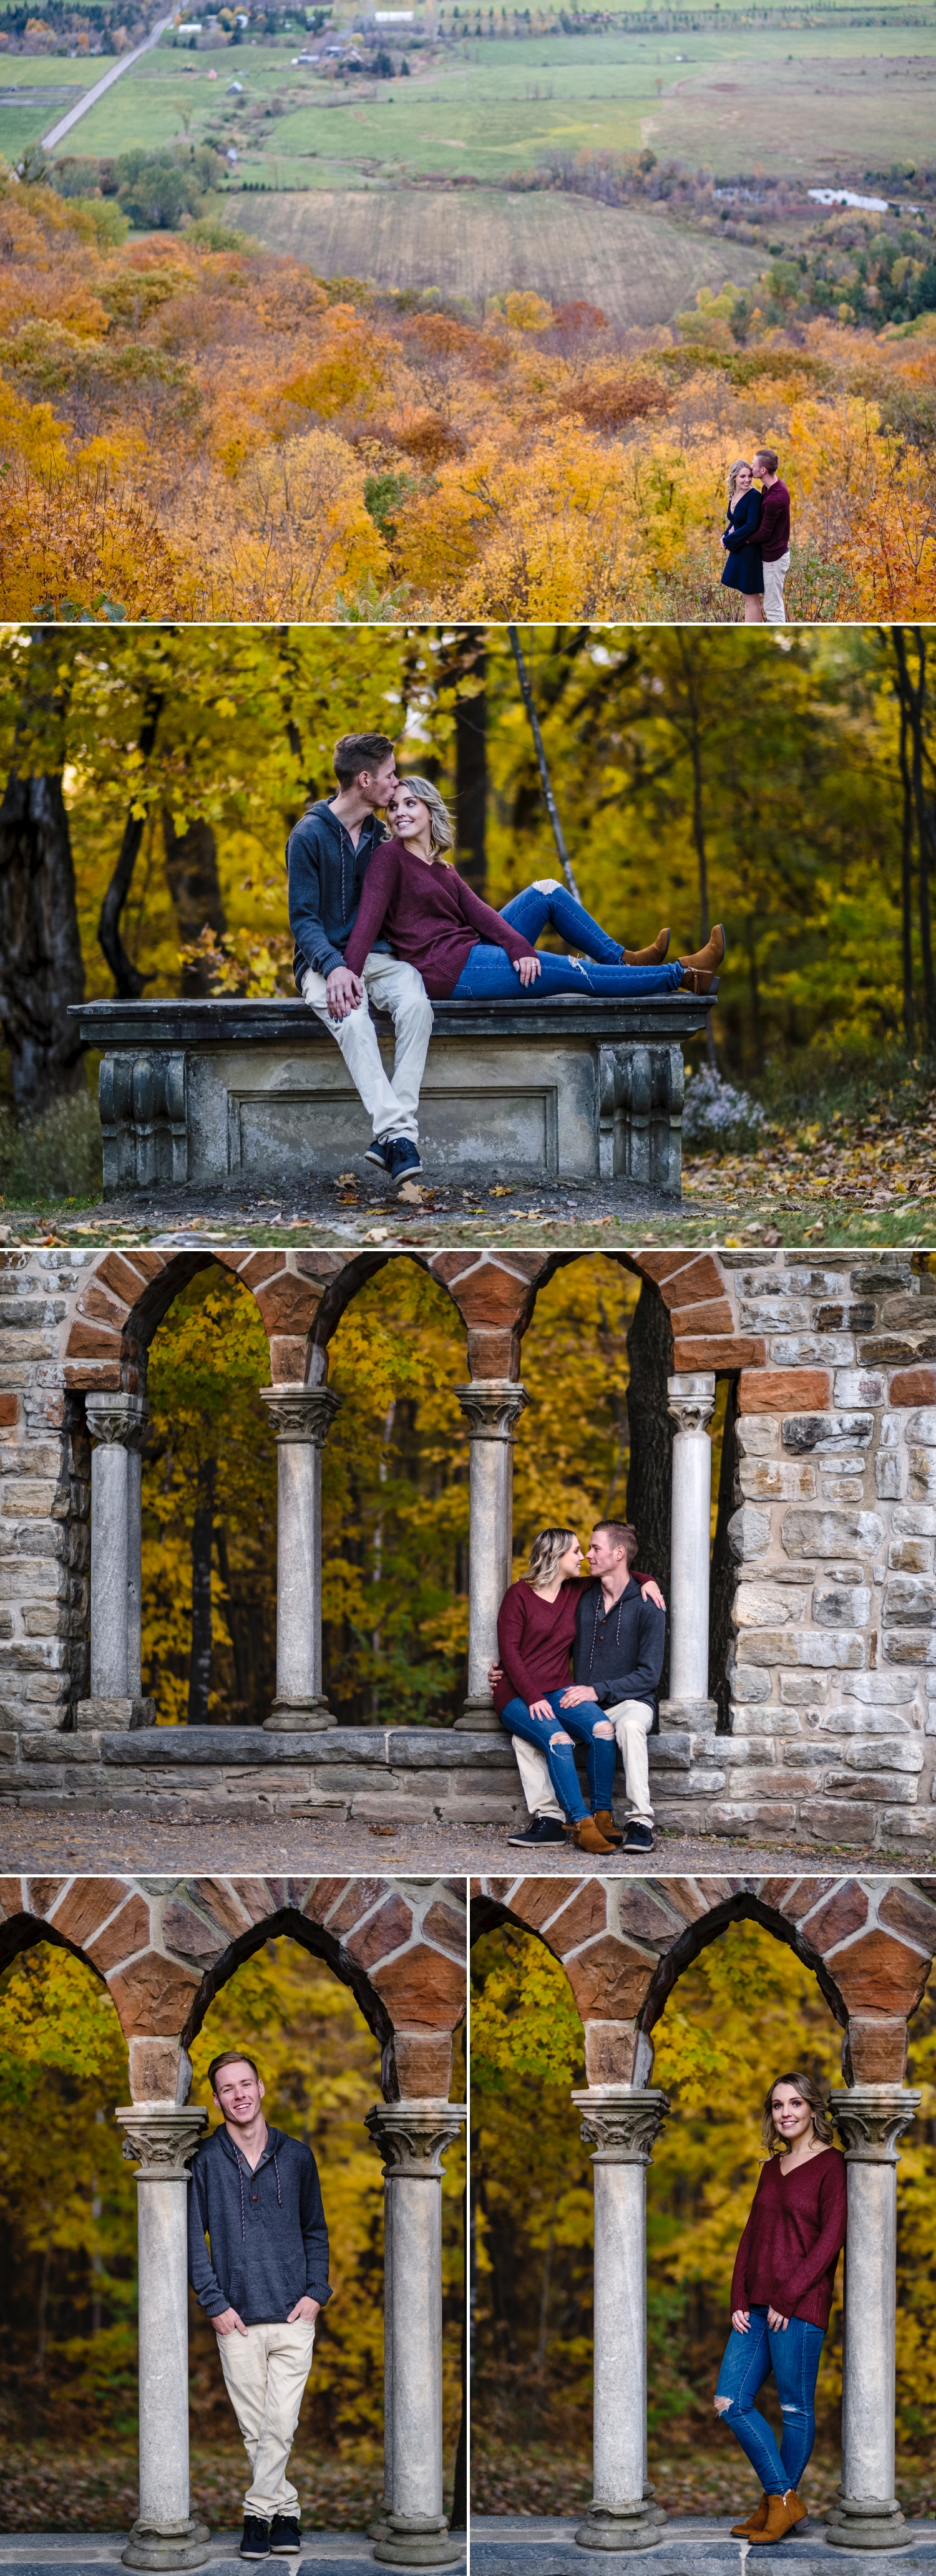 colourful photos of an engaged couple on the grounds of mackenzie king estate in gatineau park during the fall